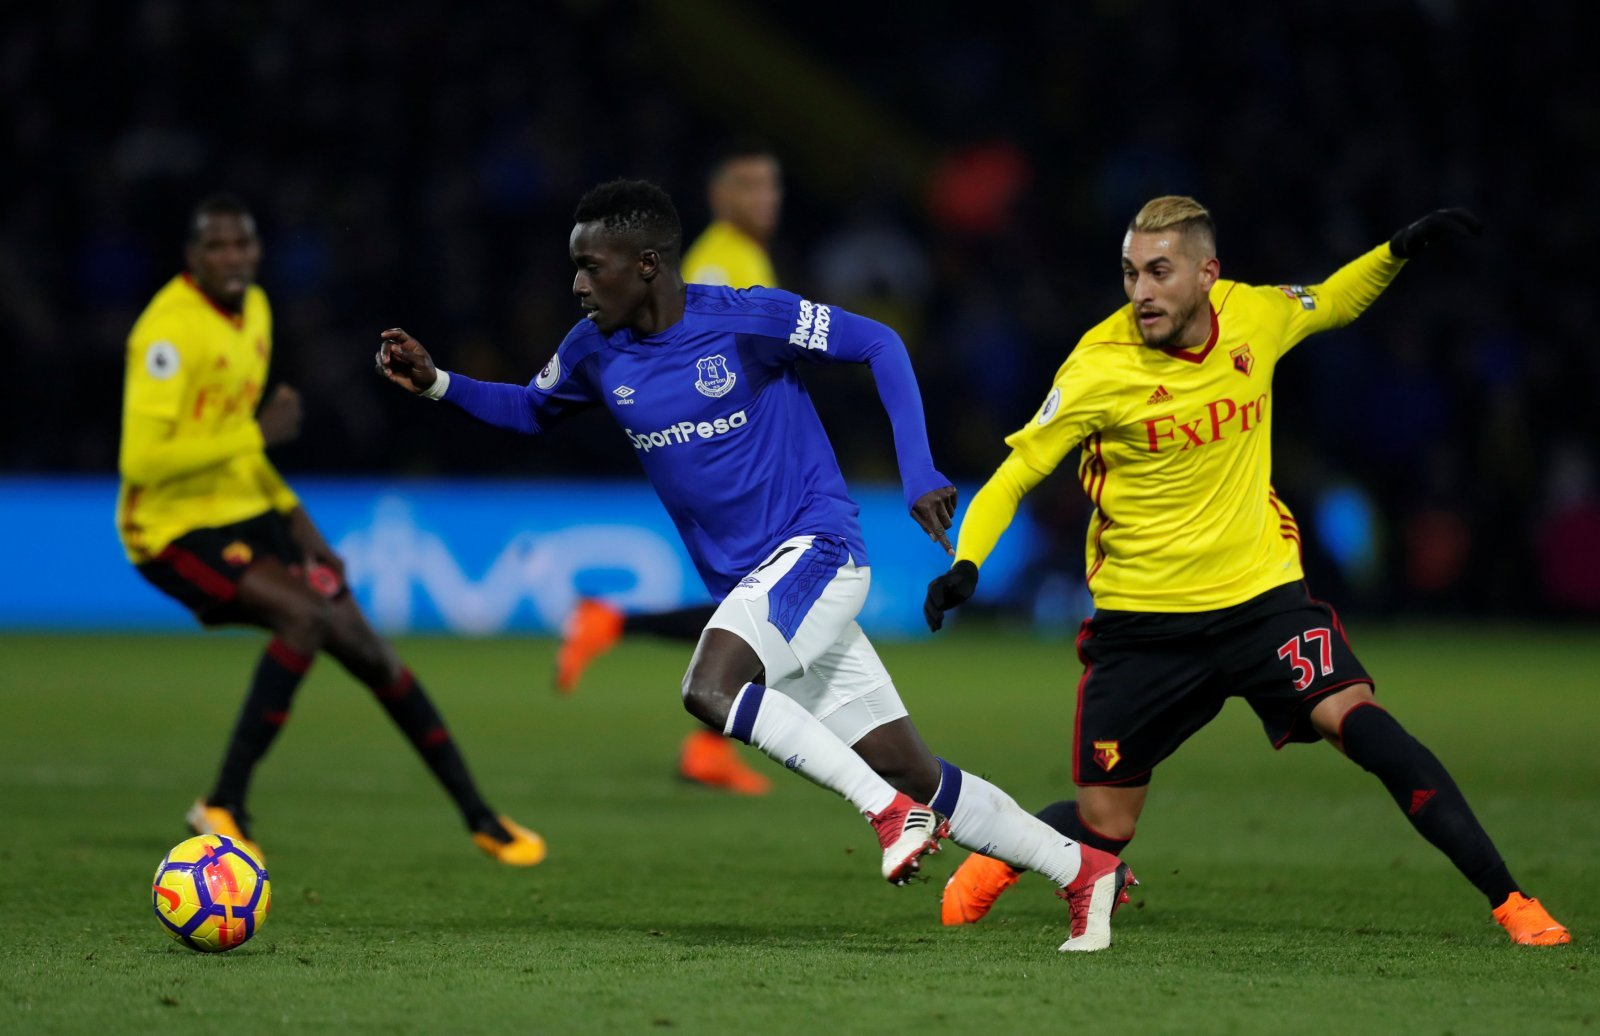 Everton fans on Twitter wax lyrical over Idrissa Gana Gueye